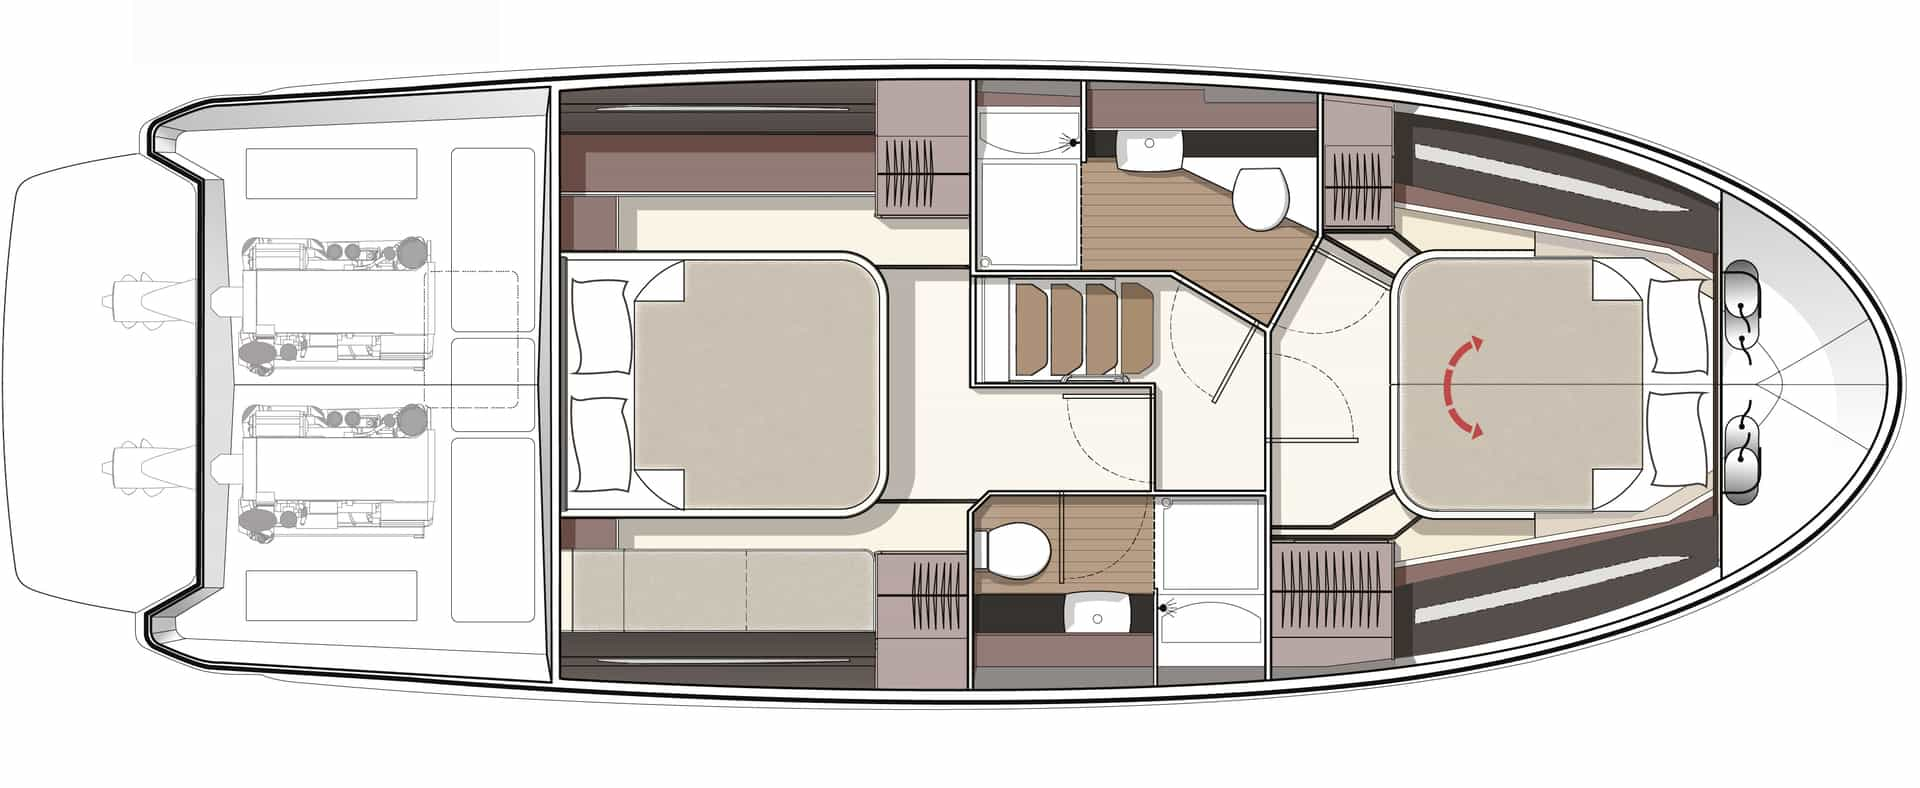 Bavaria R40 layout